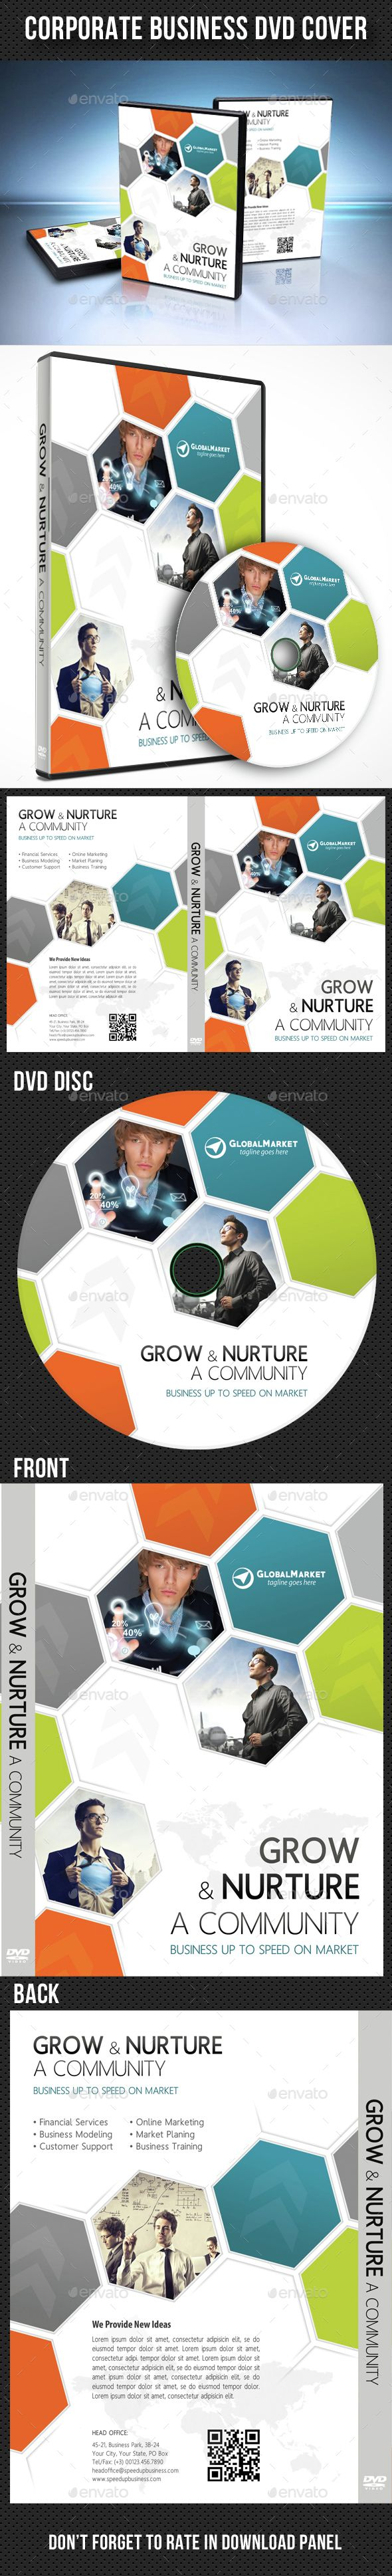 Corporate Business DVD Cover Template PSD. Download here: http ...